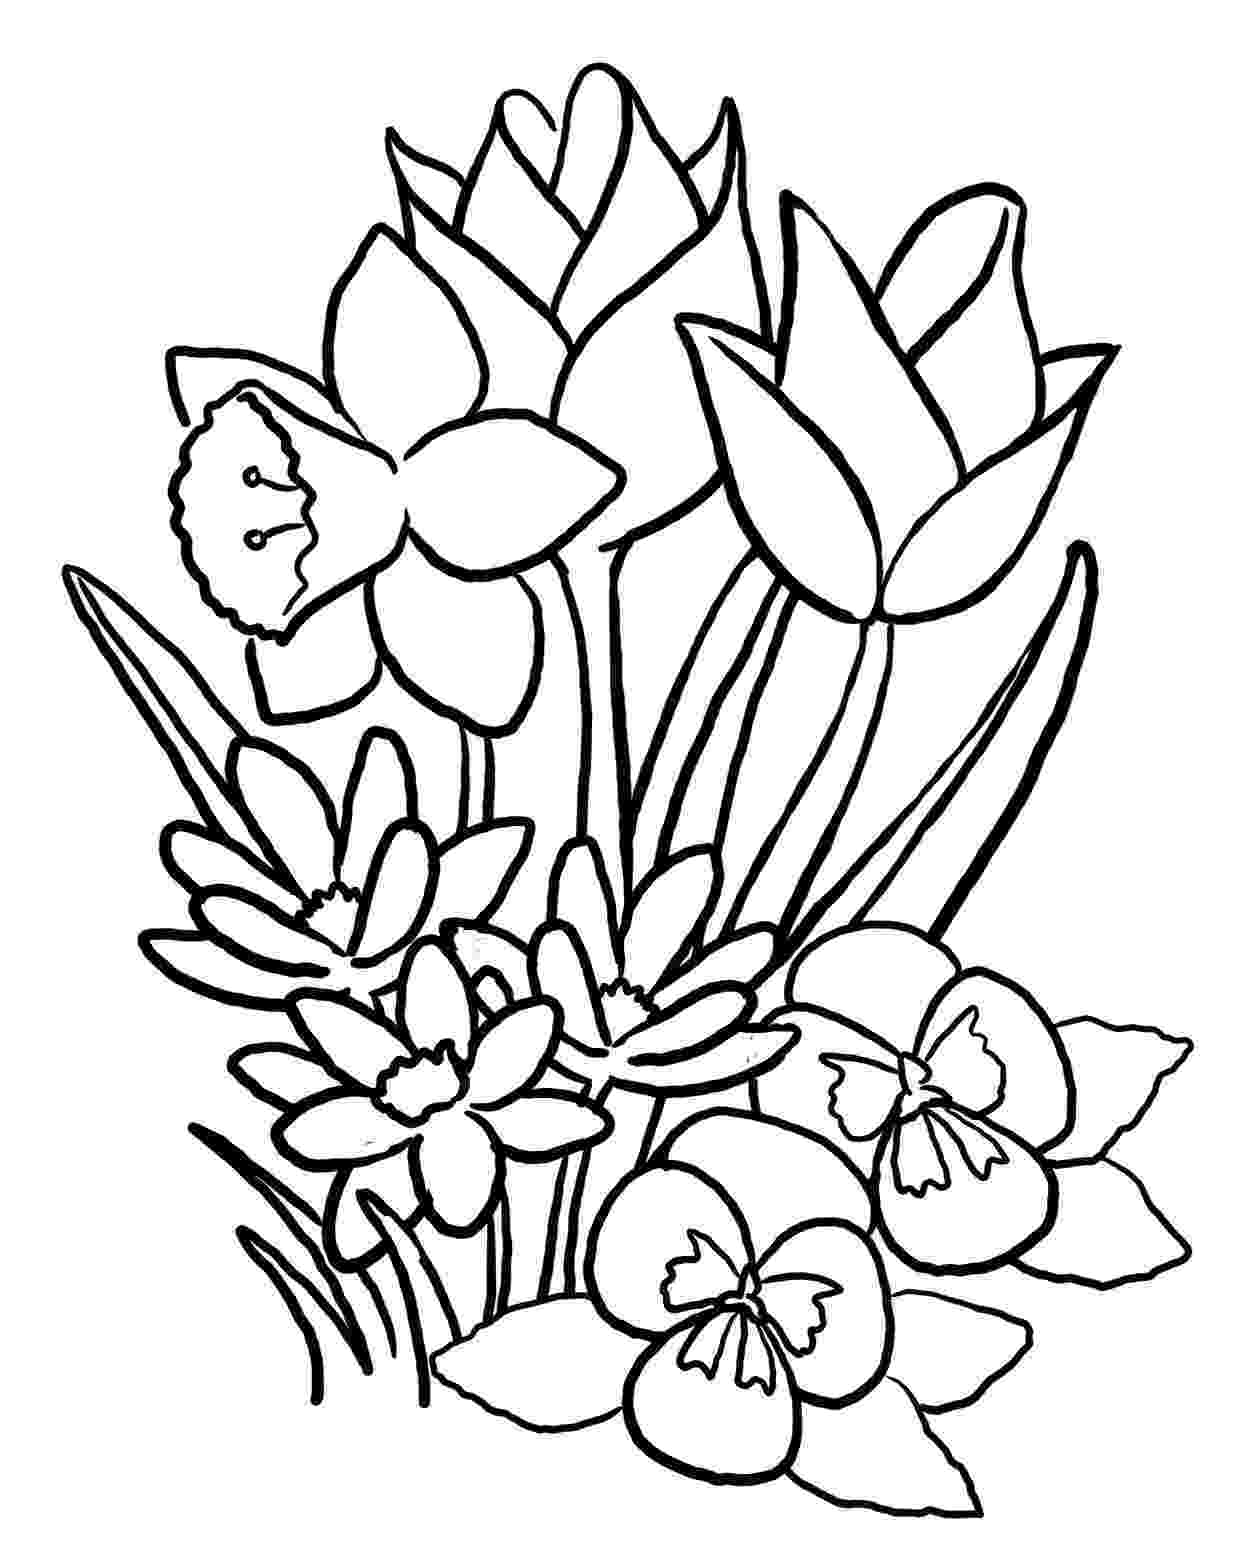 pictures of flowers to color free printables free printable flower coloring pages for kids best free color of pictures to flowers printables